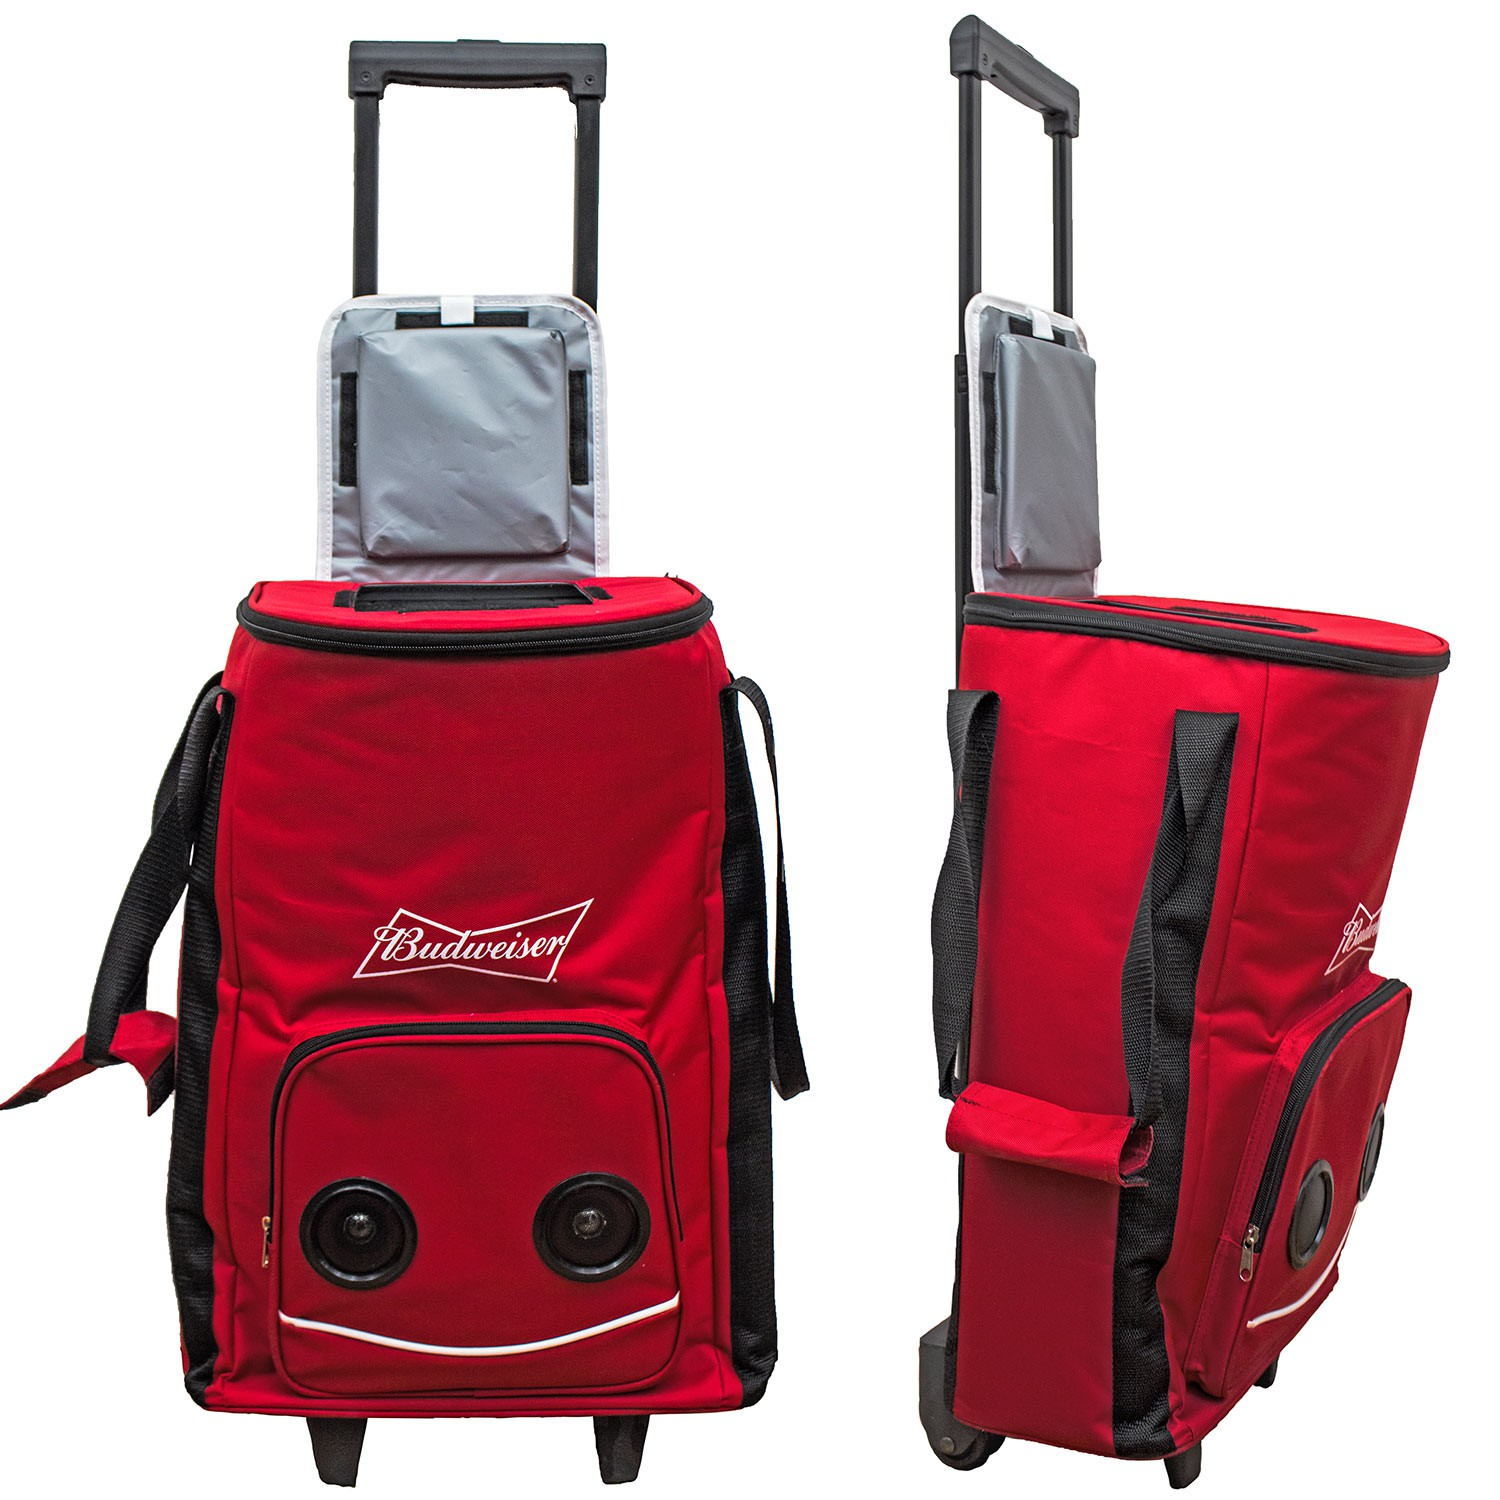 Budweiser Rolling Cooler Bag With Speakers